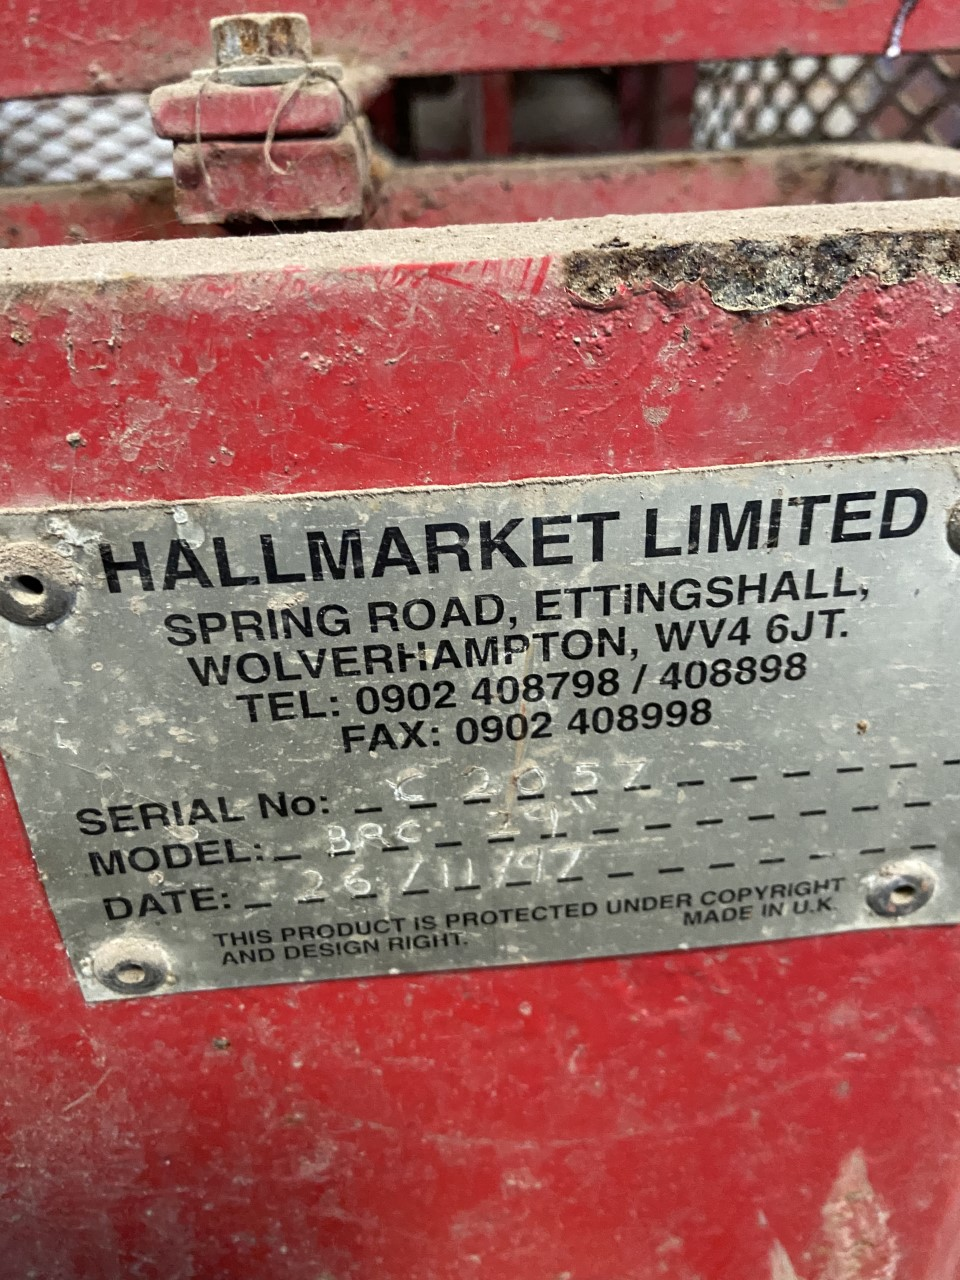 Hallmarket Big Roll Cutter for sale